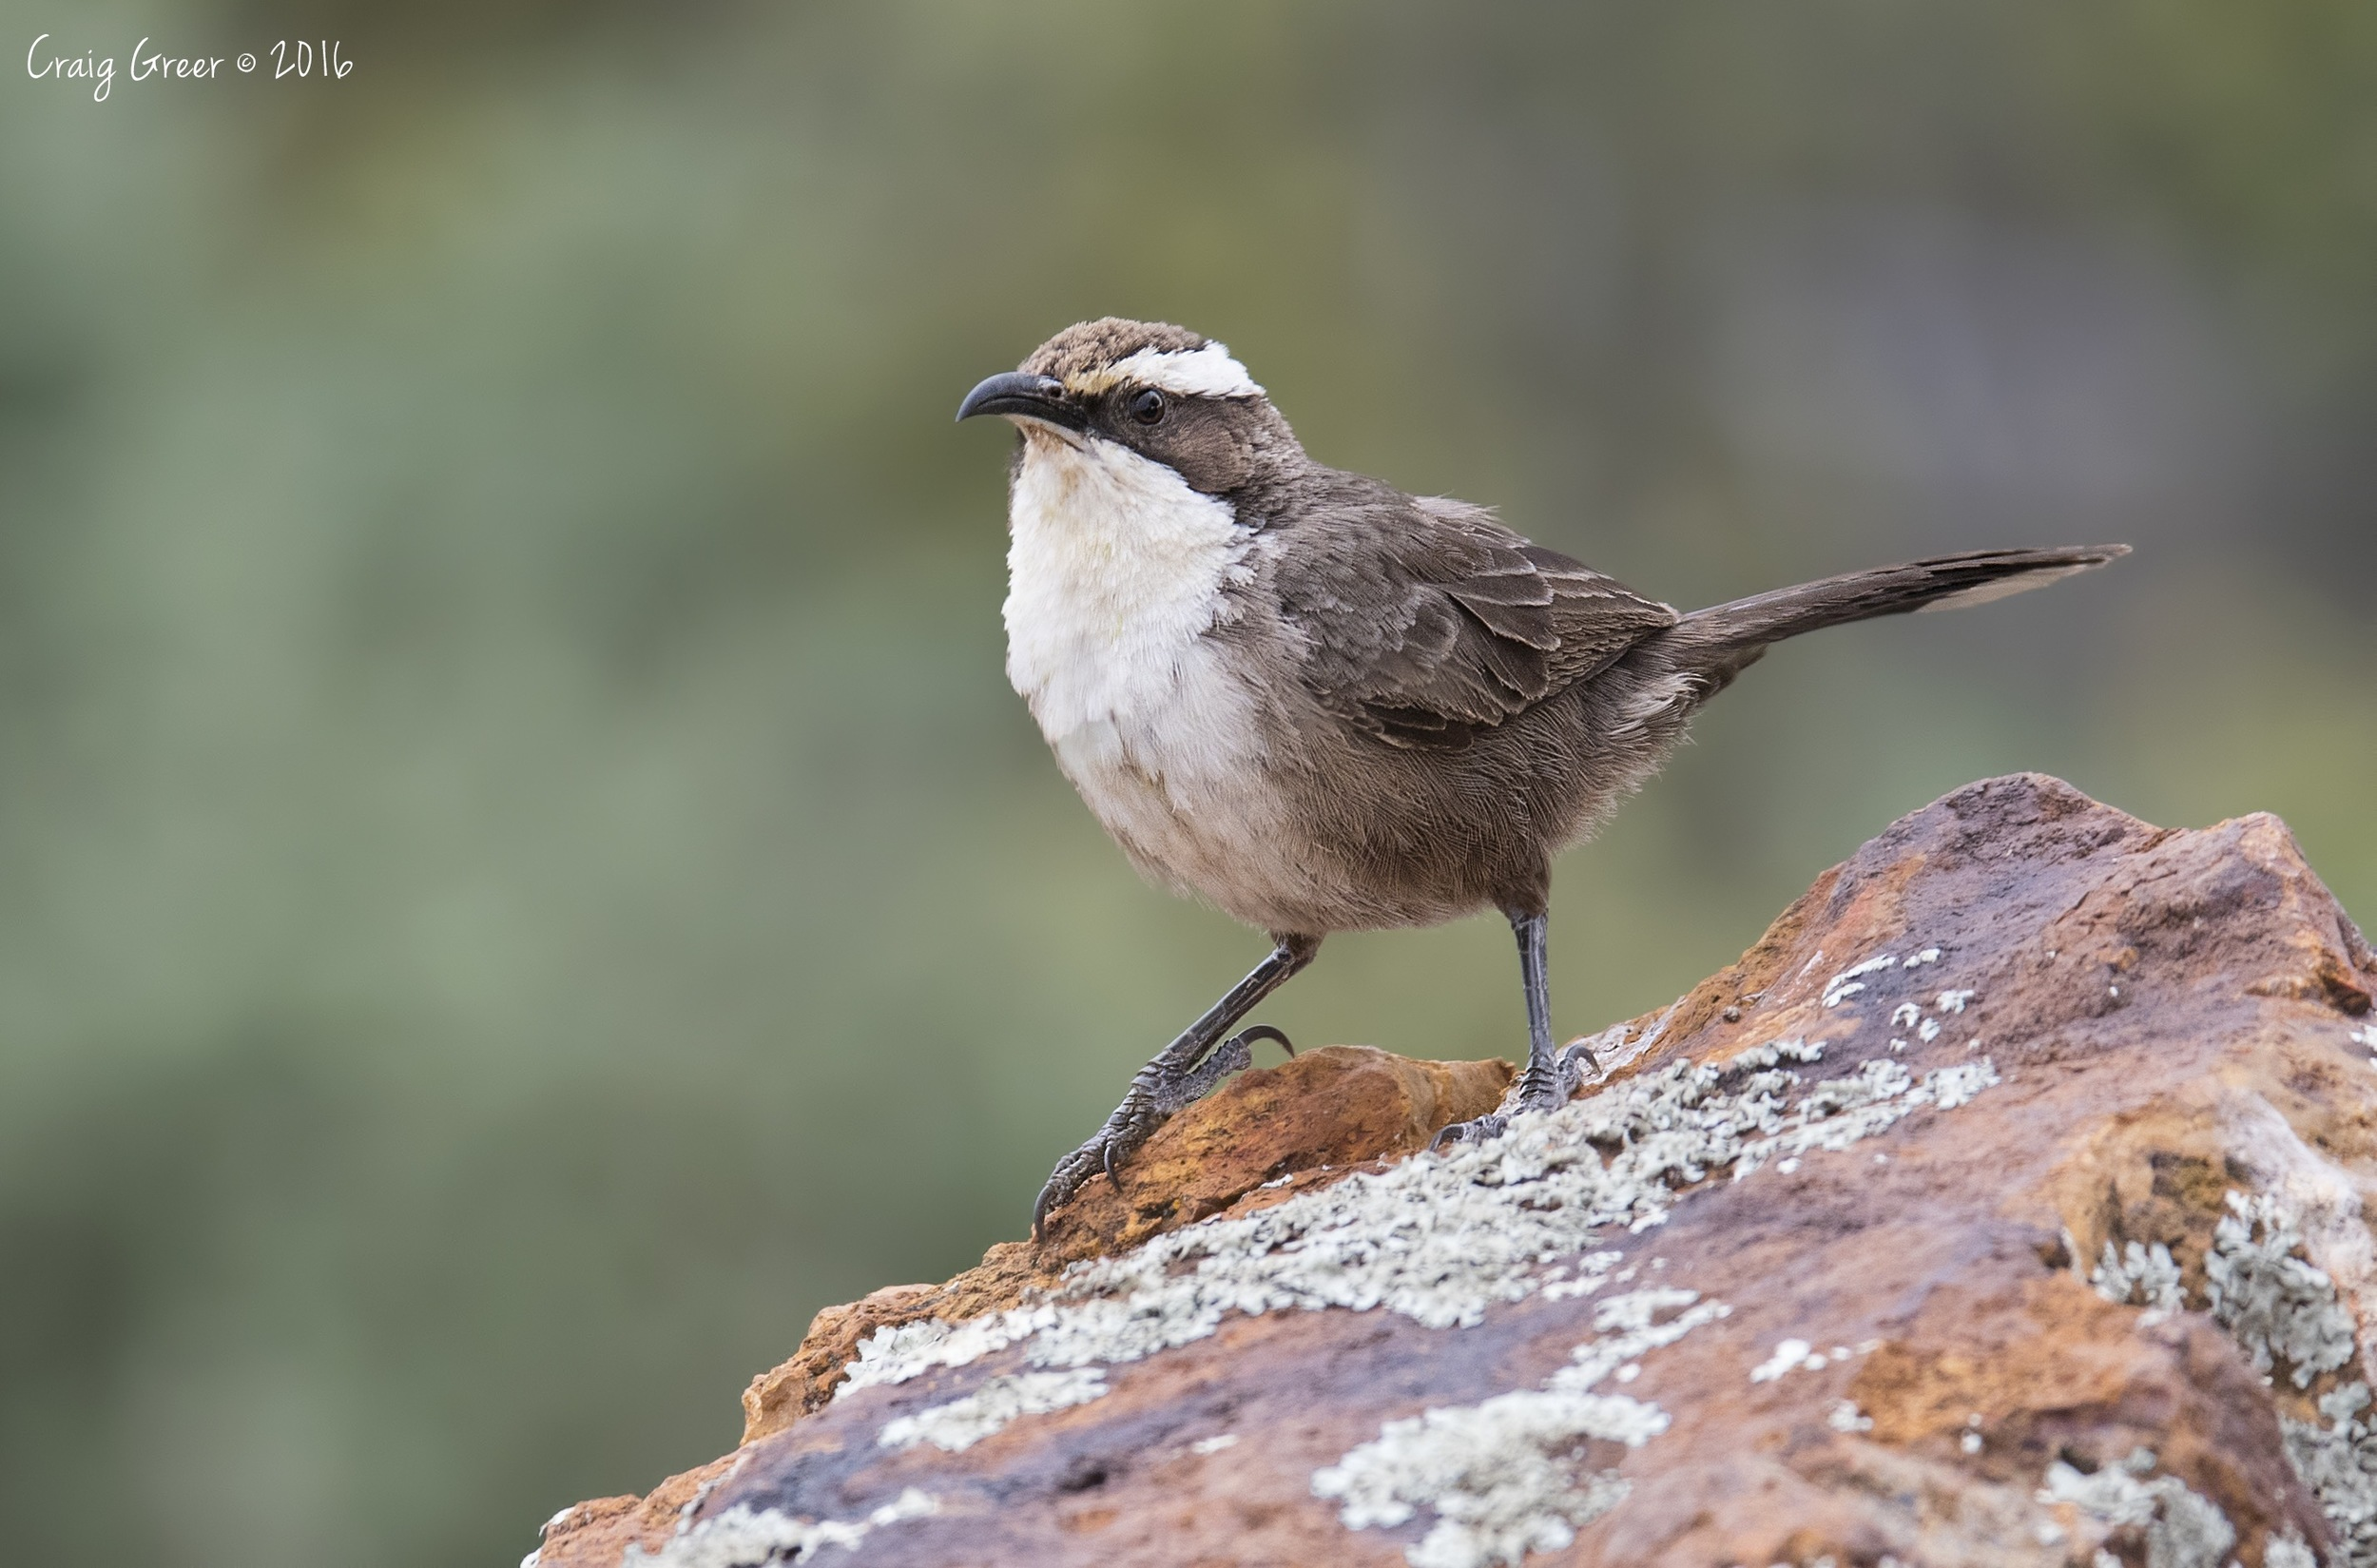 White-browed Babbler | Arid Lands Botanic Gardens